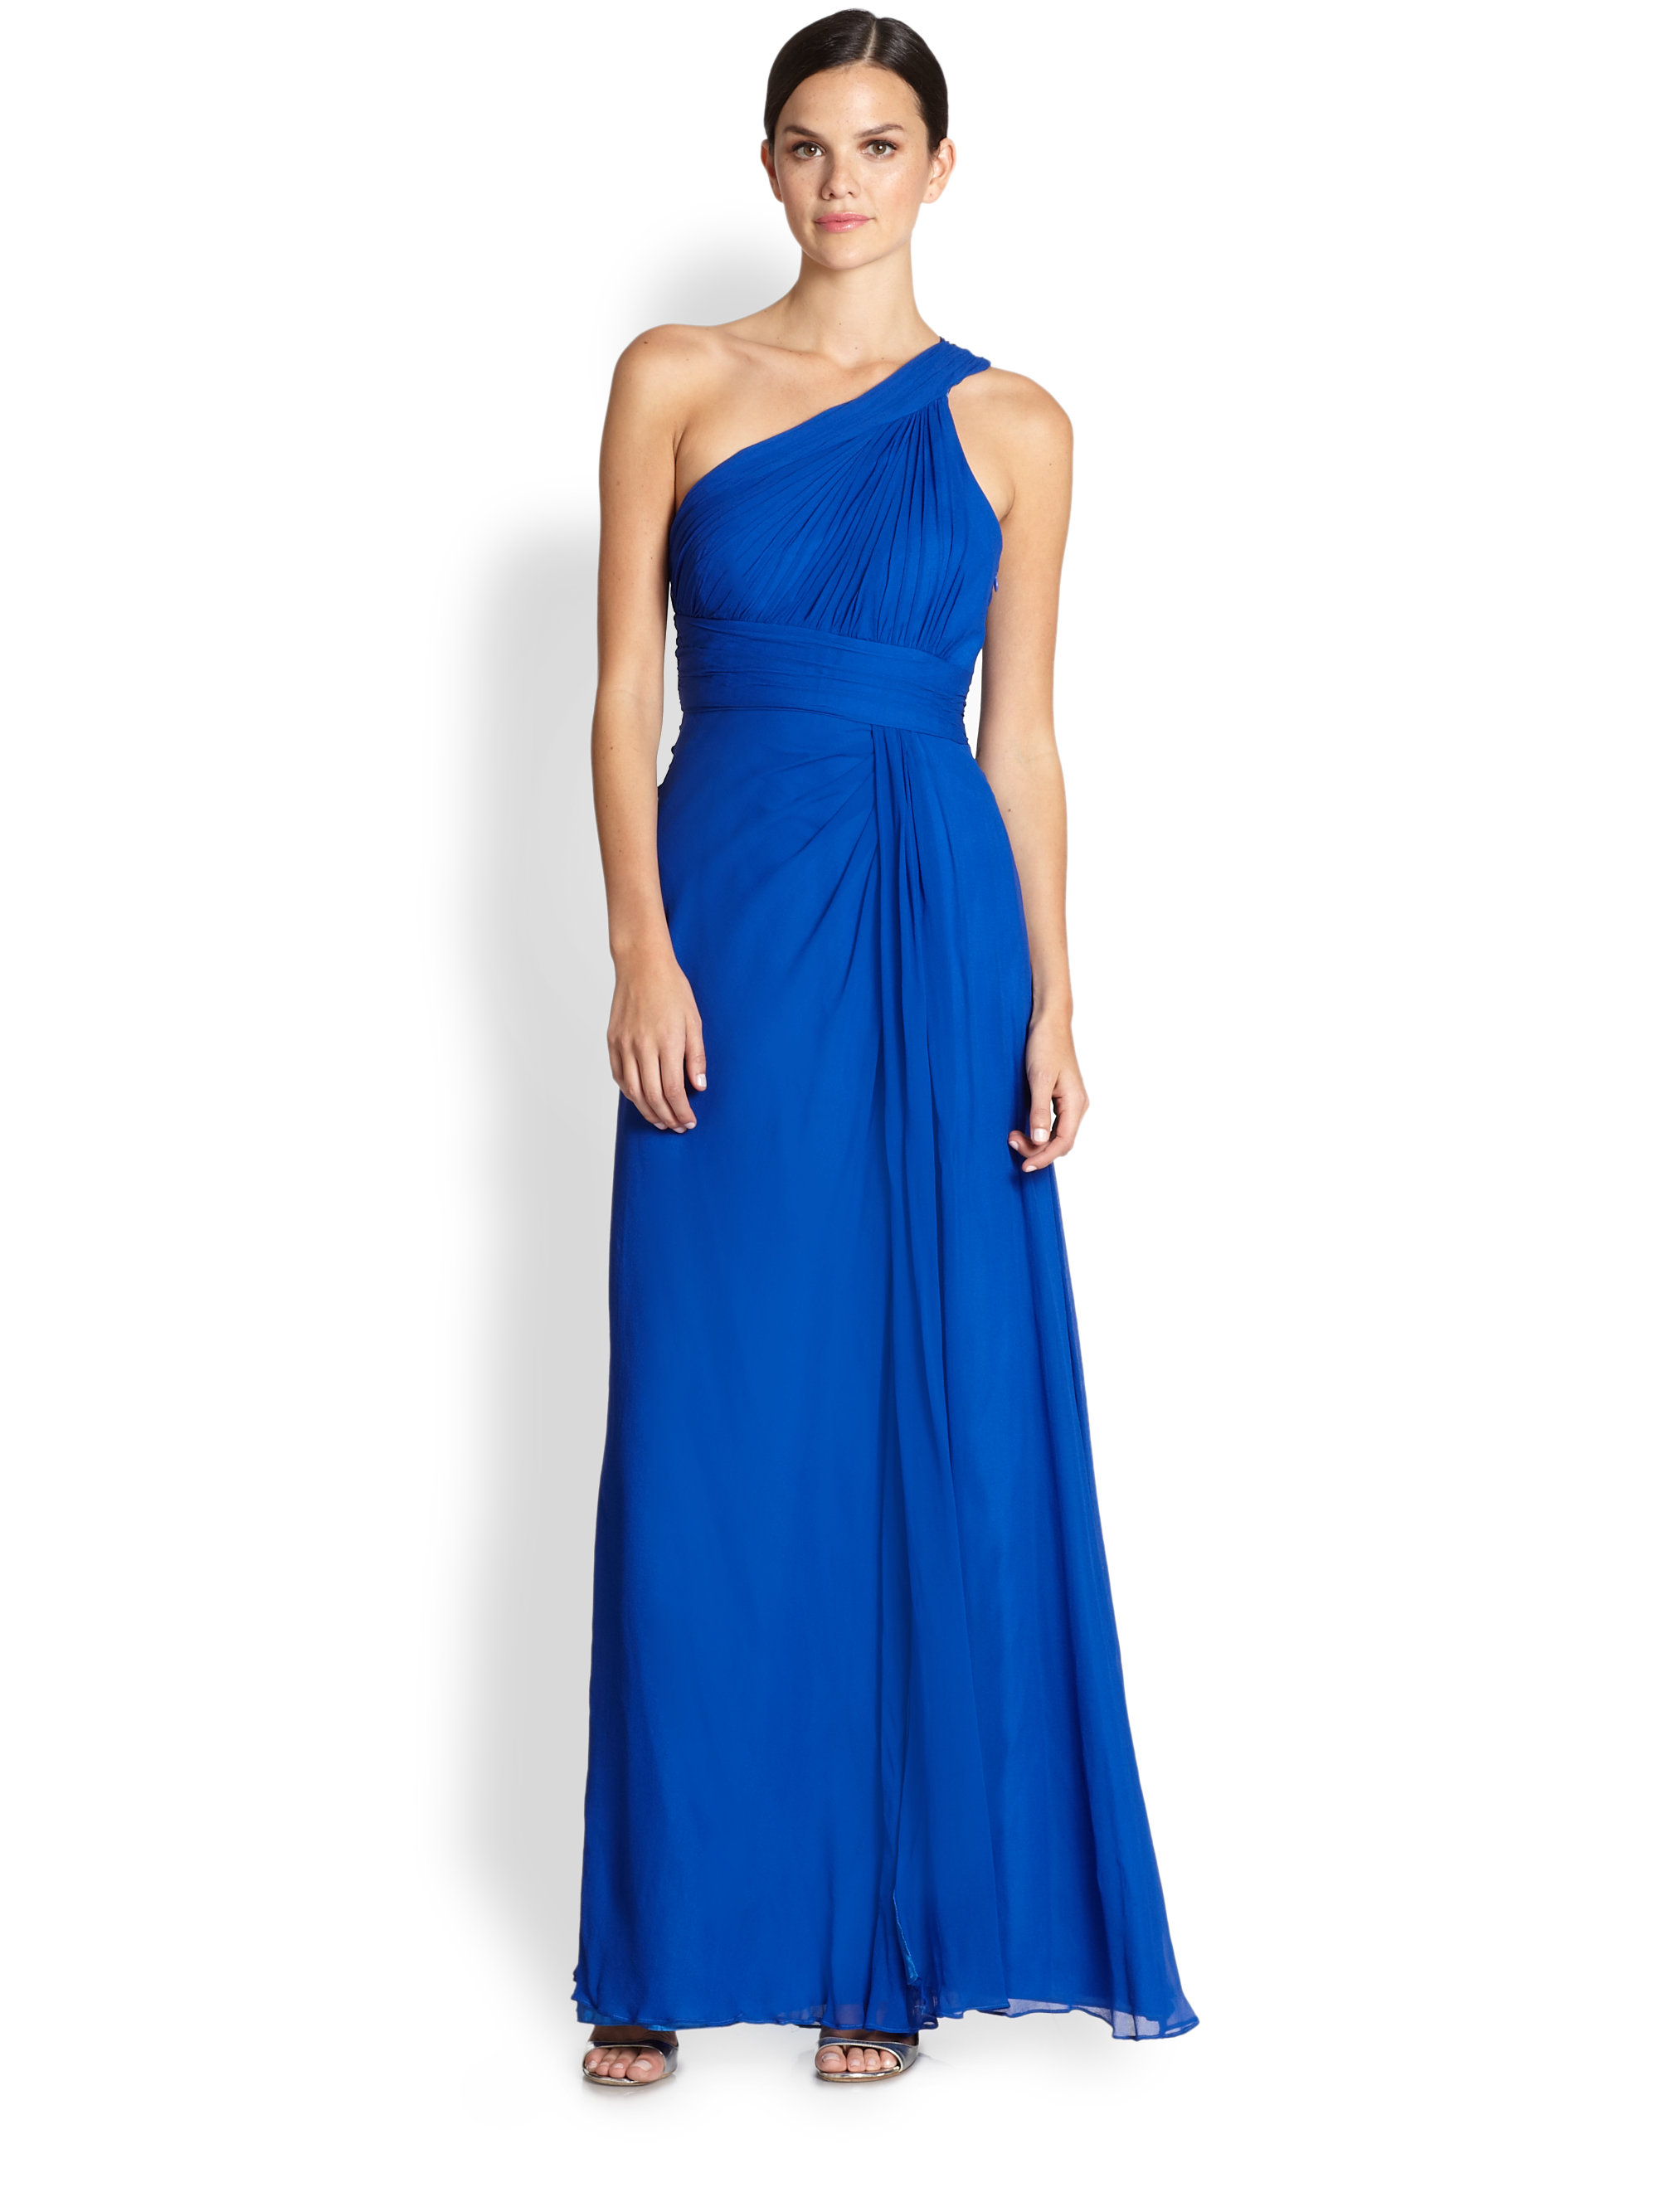 Strapless Grecian Dress